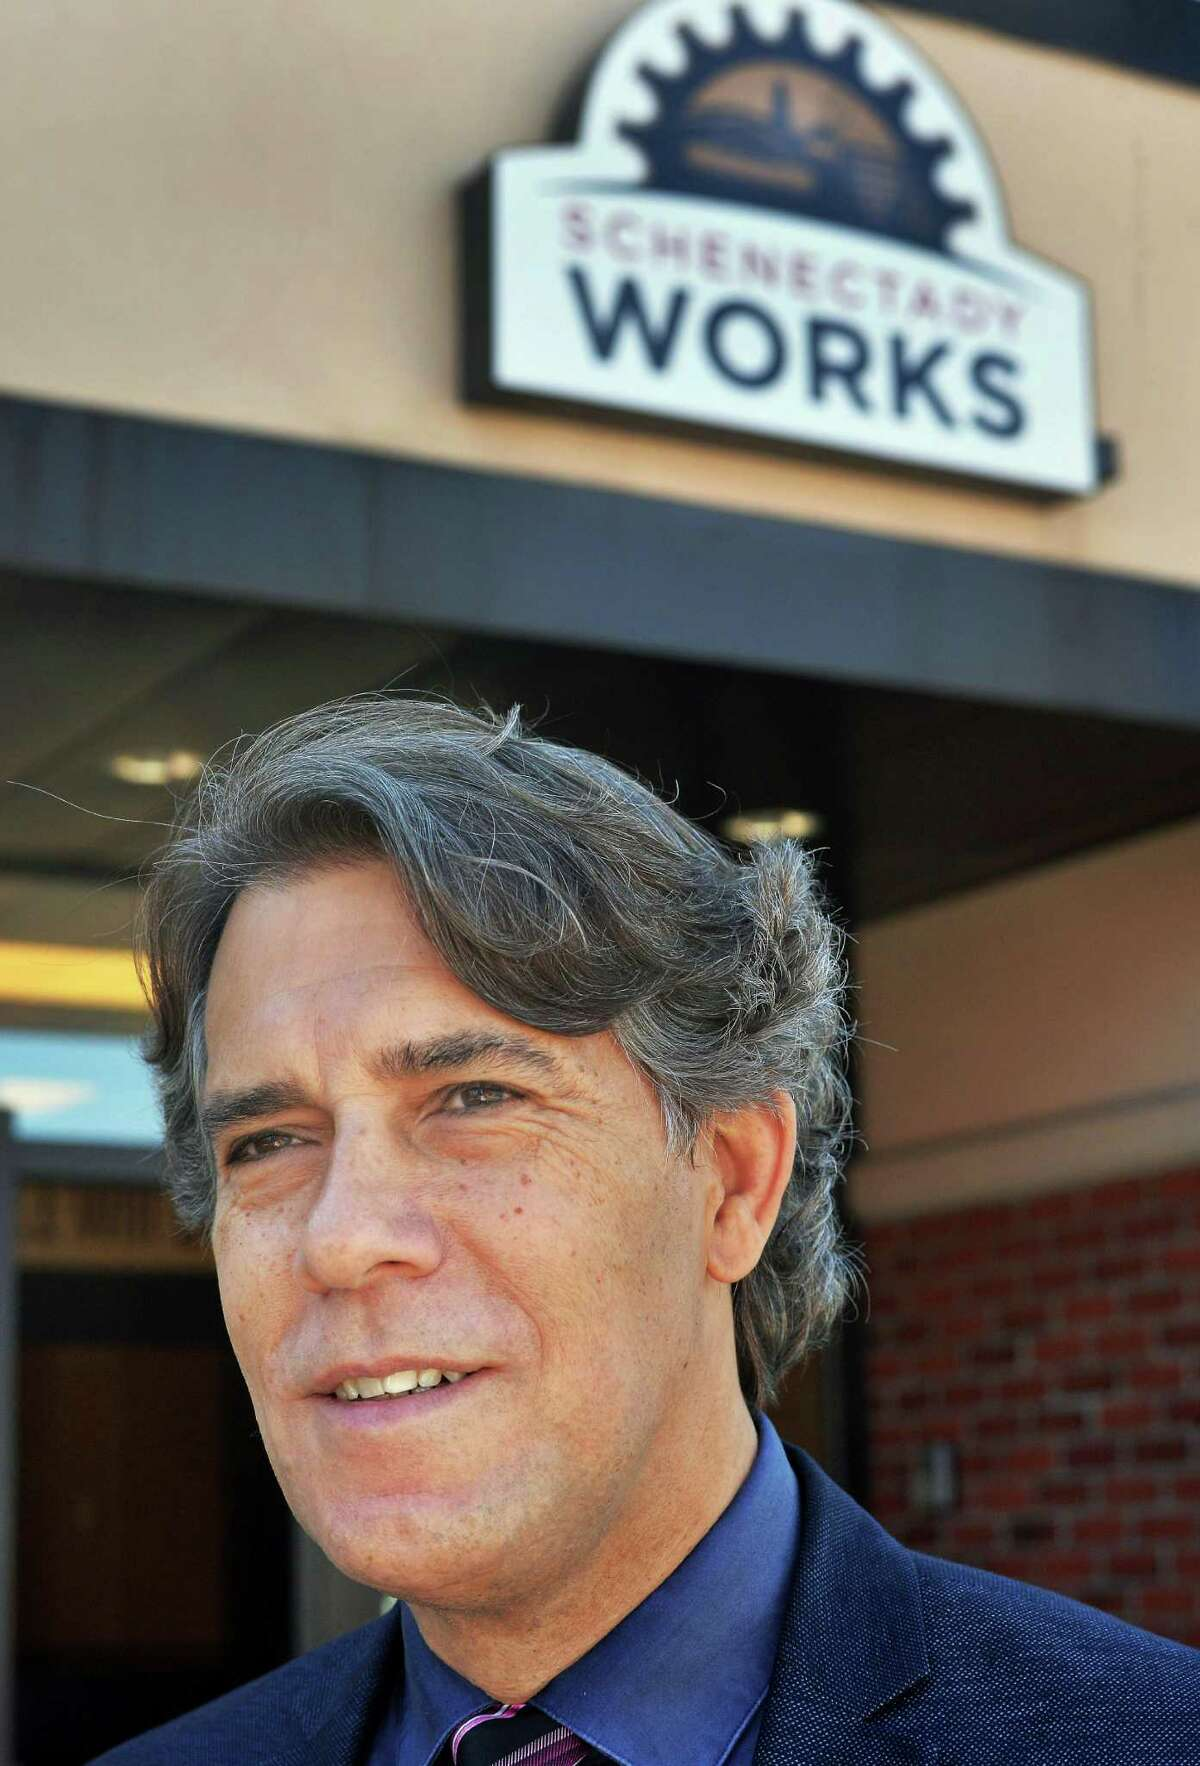 Bob Carreau of the Schenectady Foundation outside the Schenectady Works Career Training Center Wednesday Sept. 23, 2015 in Schenectady, NY. (John Carl D'Annibale / Times Union)